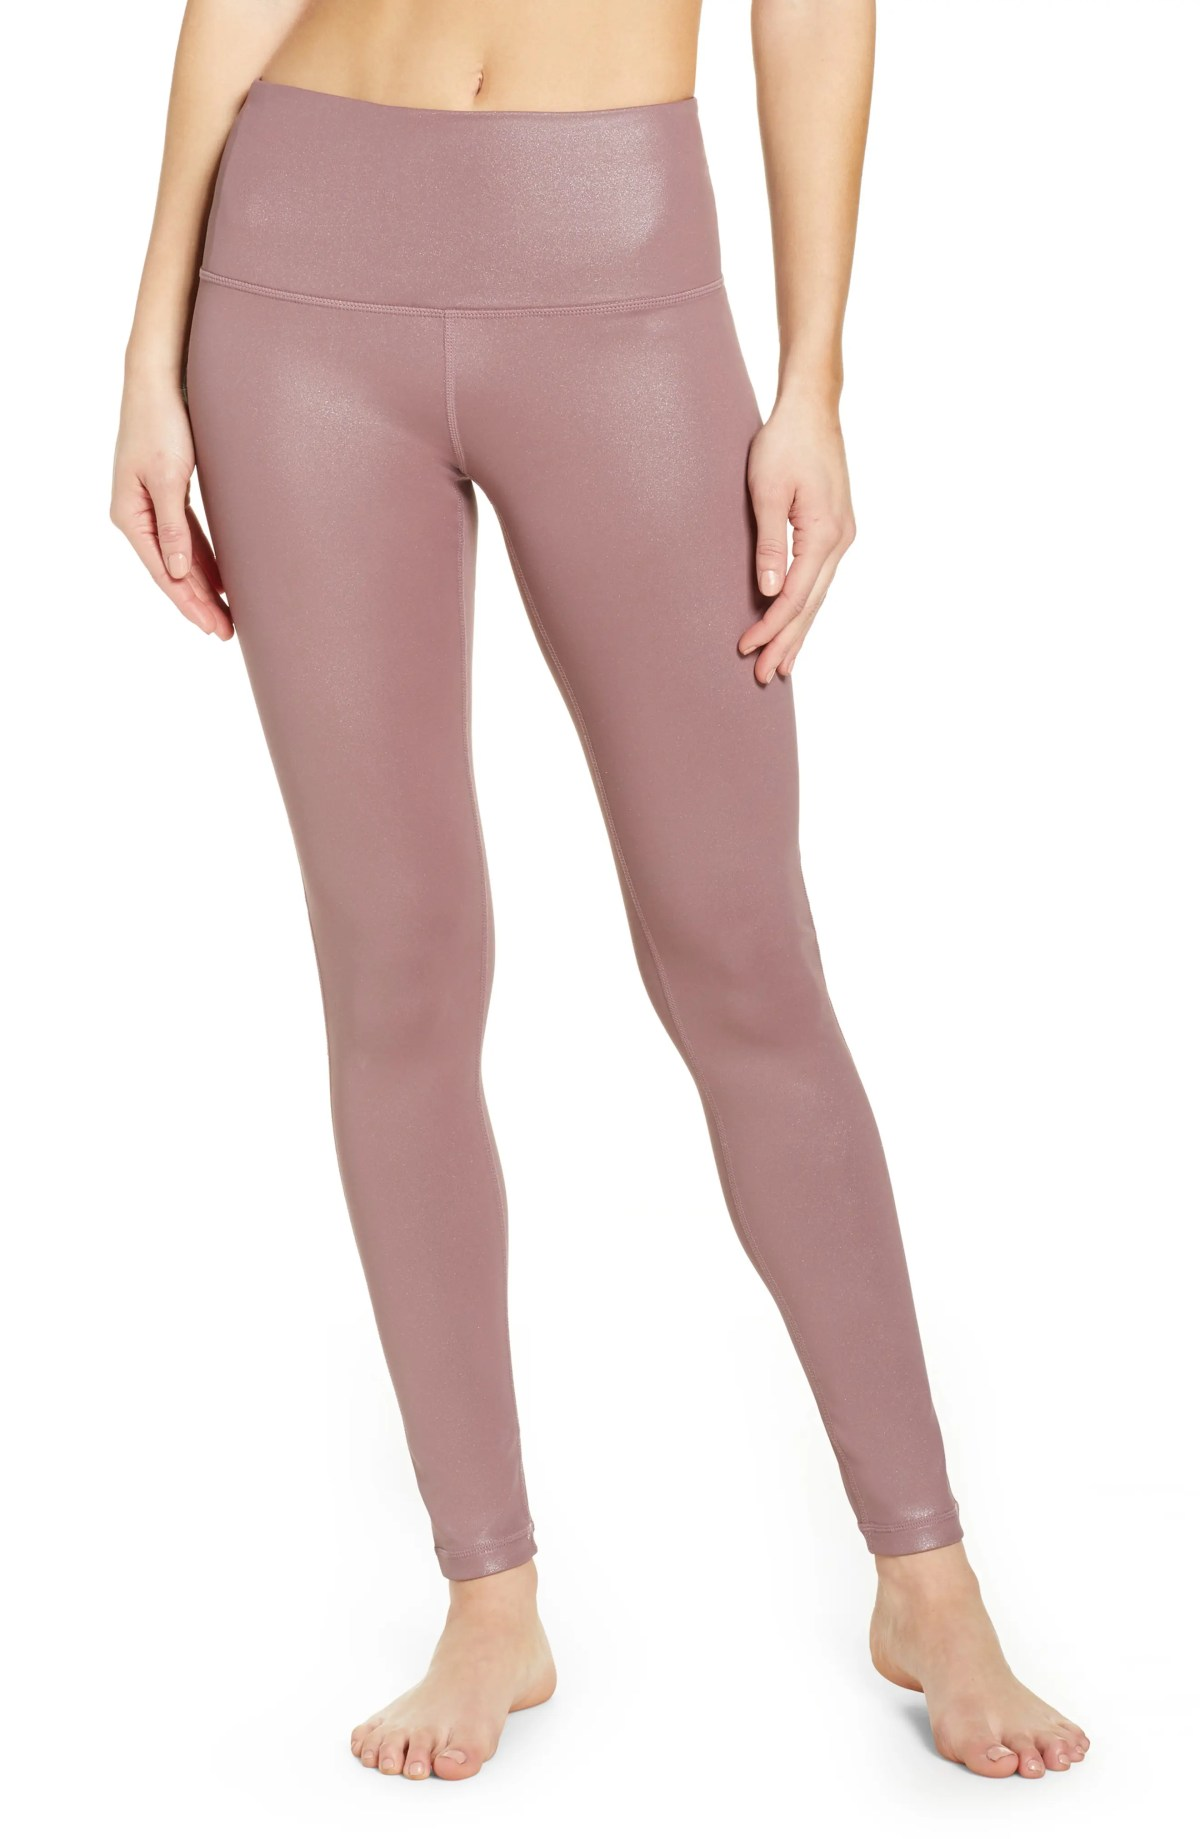 ZELLA Live-In High Waist Leggings, Main, color, PURPLE TAUPE SHINE PRINT